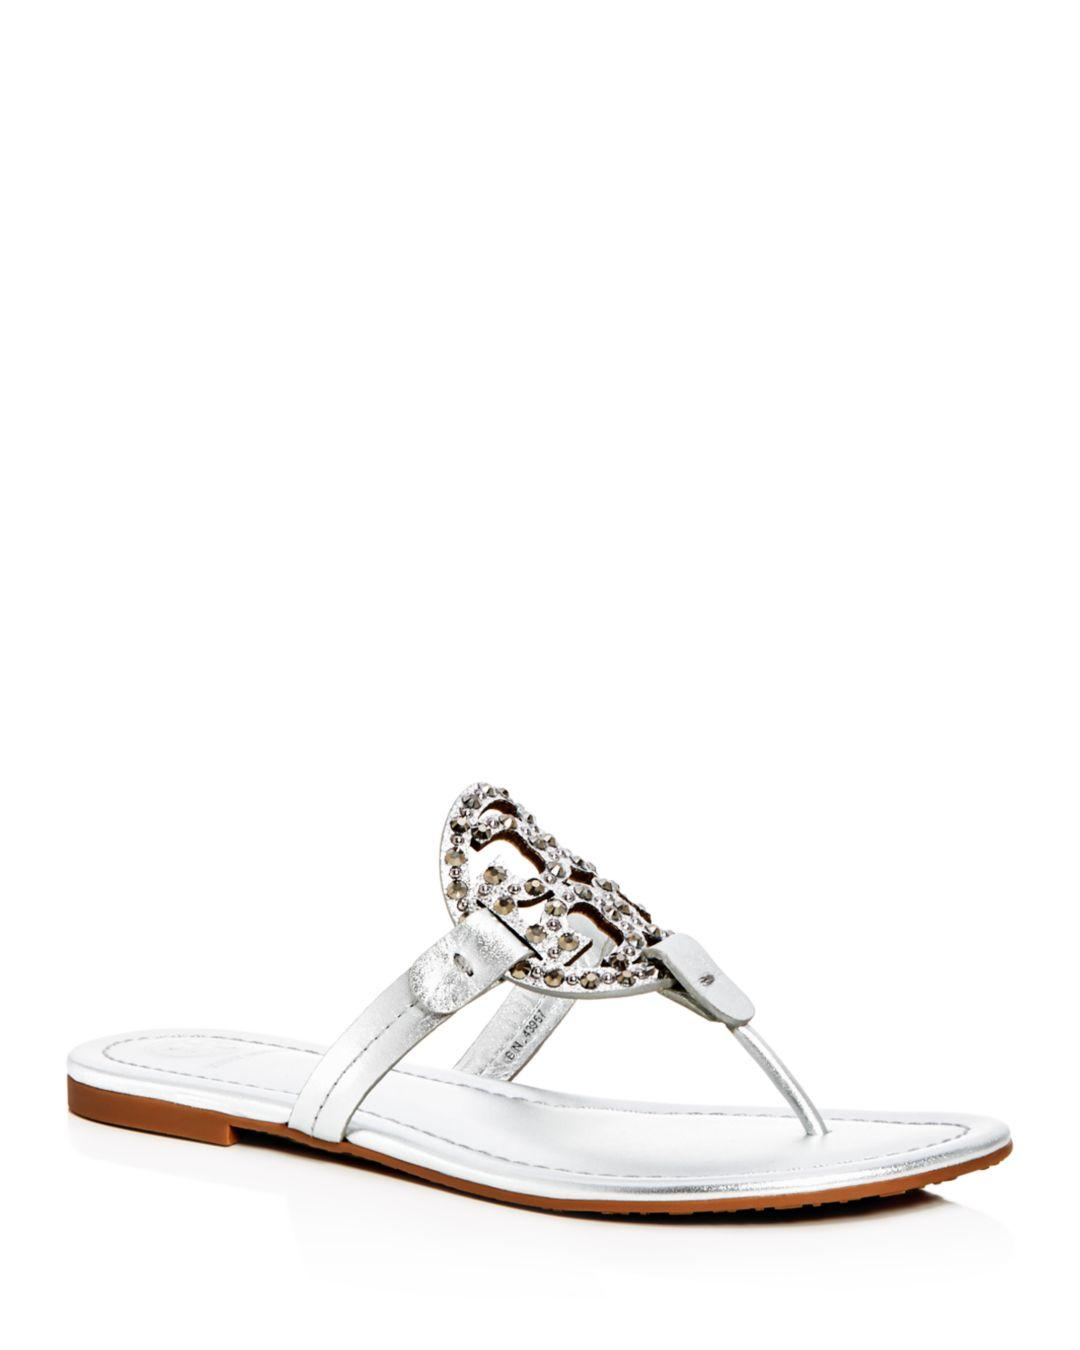 0051adace Lyst - Tory Burch Women s Miller Embellished Thong Sandals in ...